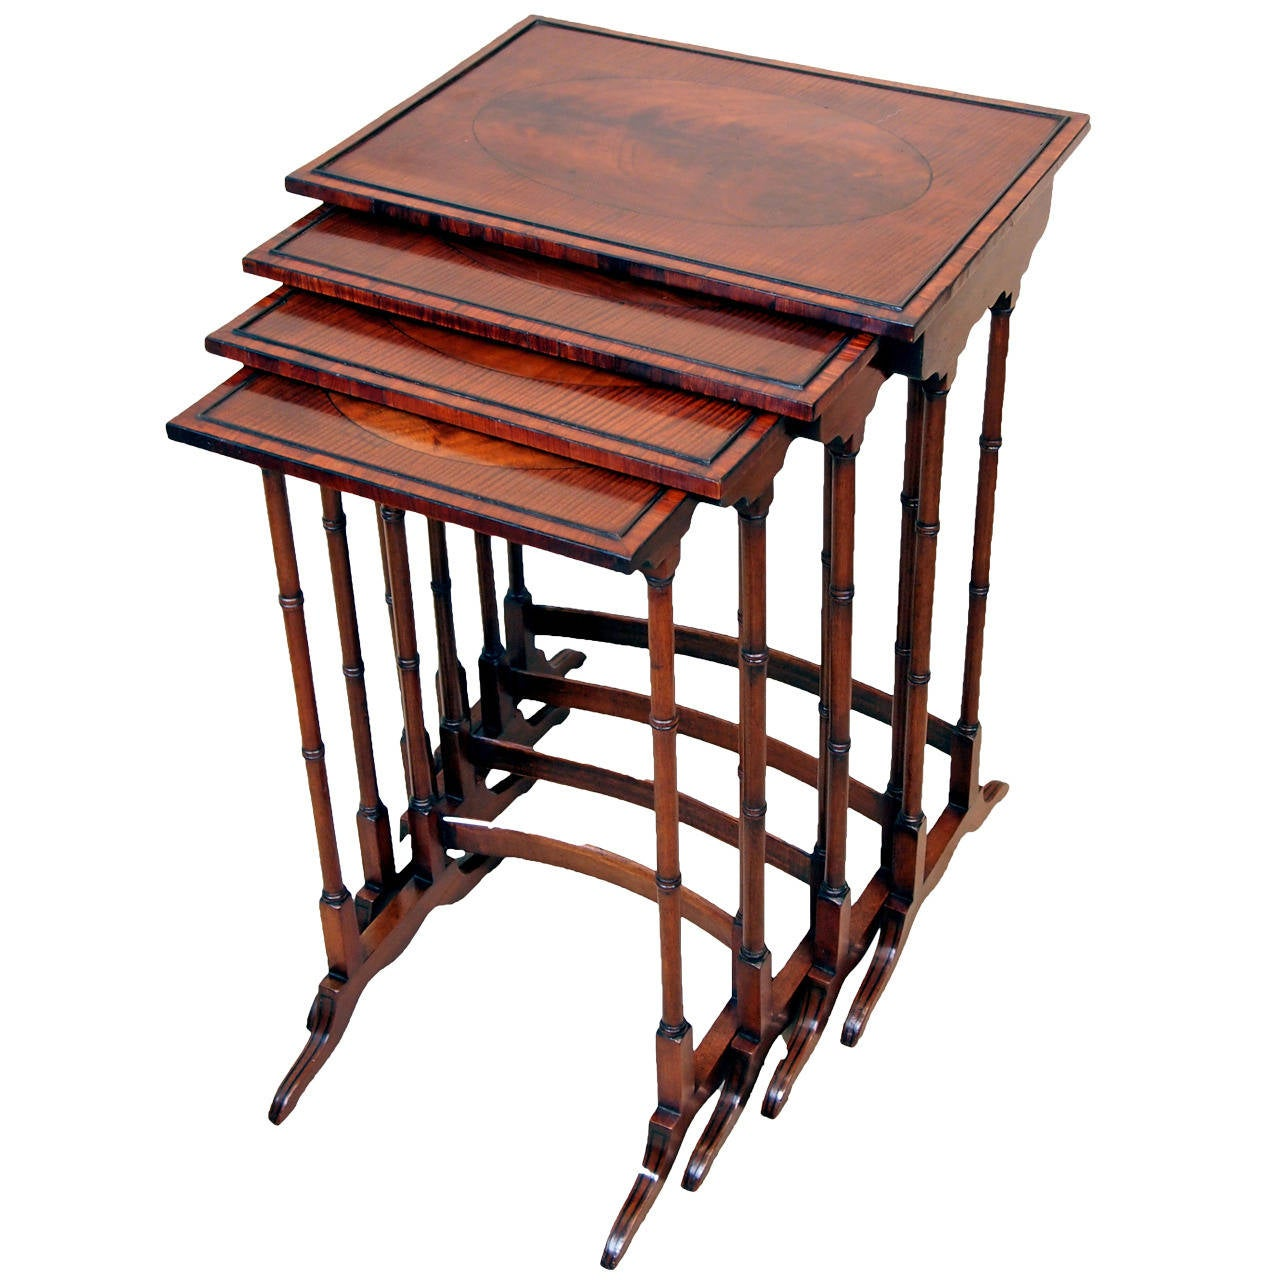 Antique mahogany quartetto nest of tables at stdibs